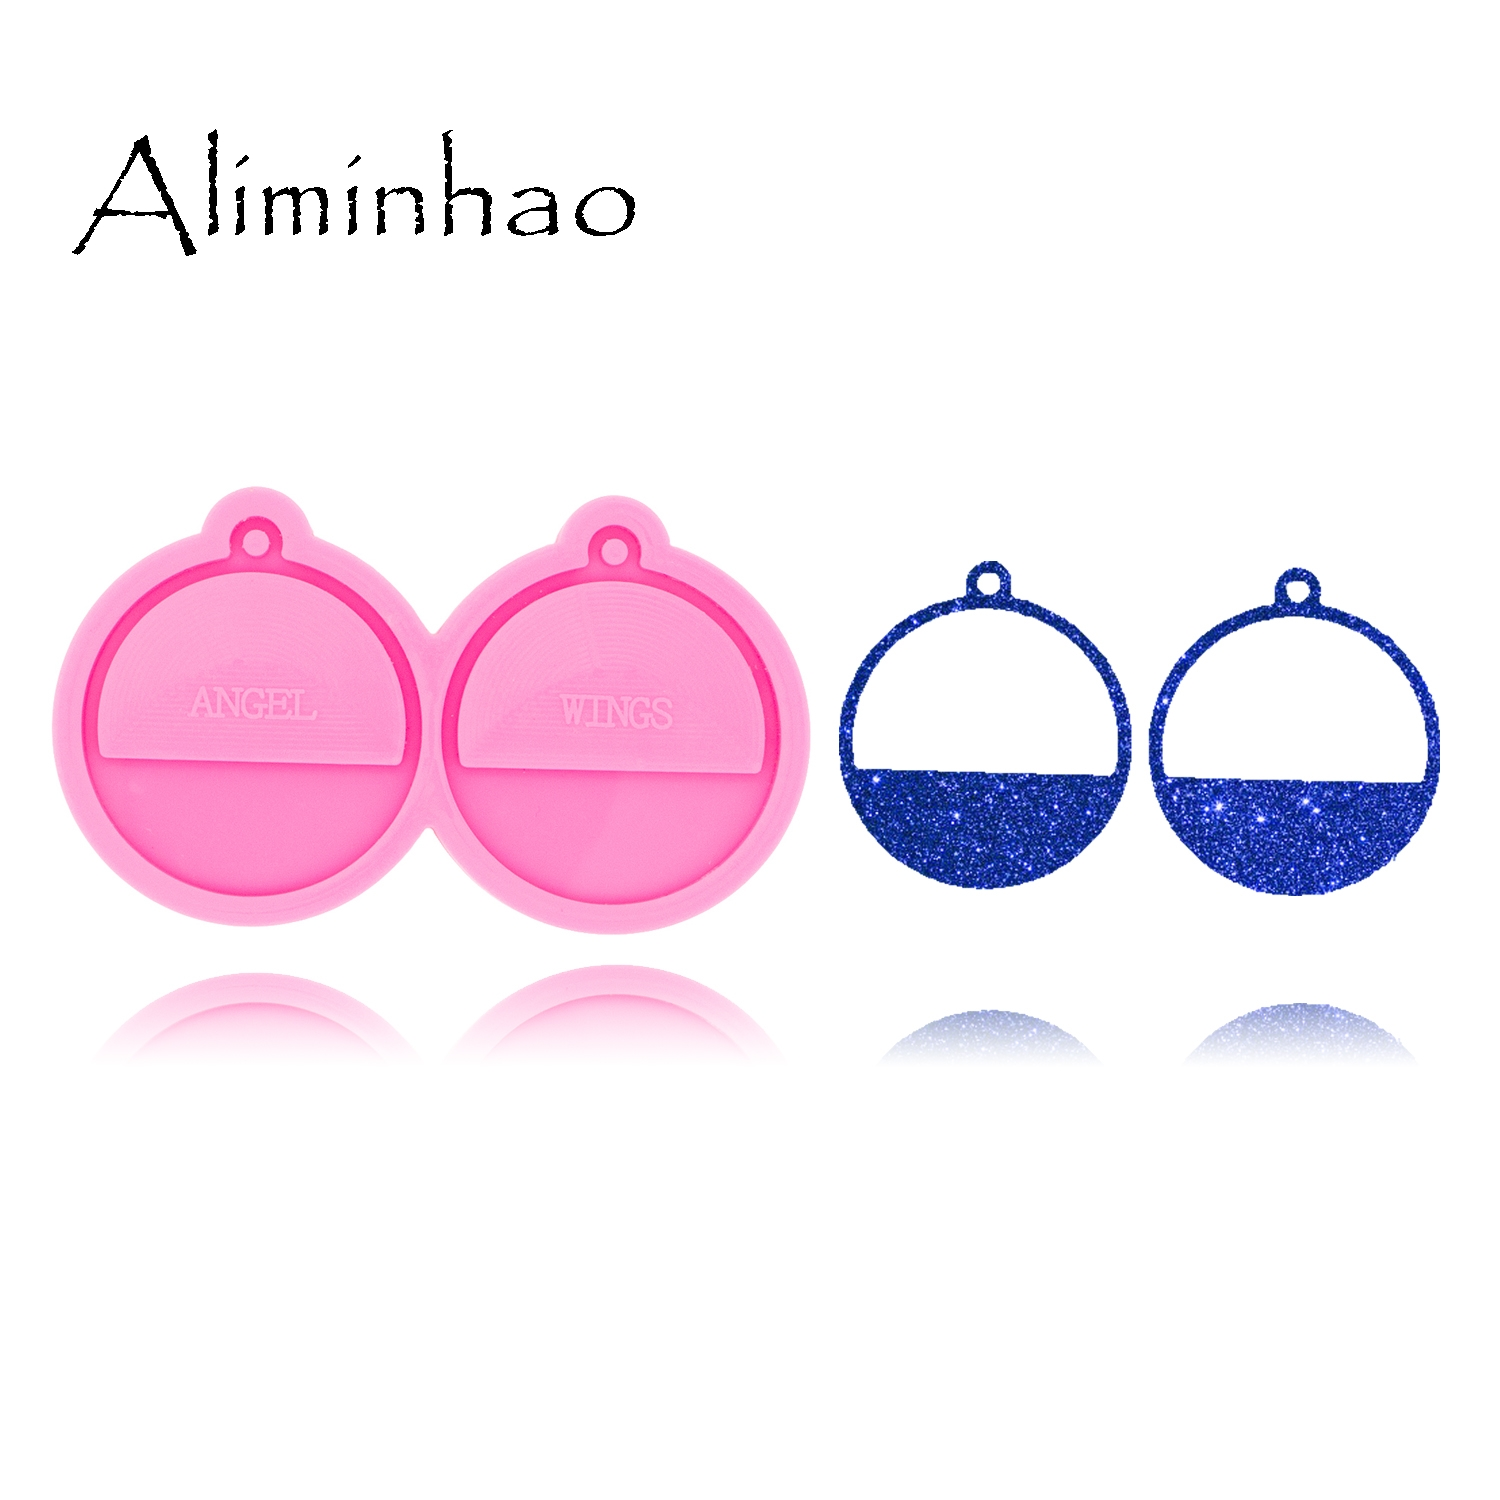 DY0428 L/M/S Semicircular Shape Earrings Handmade DIY Epoxy Silicone Molds Fashion Jewelry Resin Craft Mould